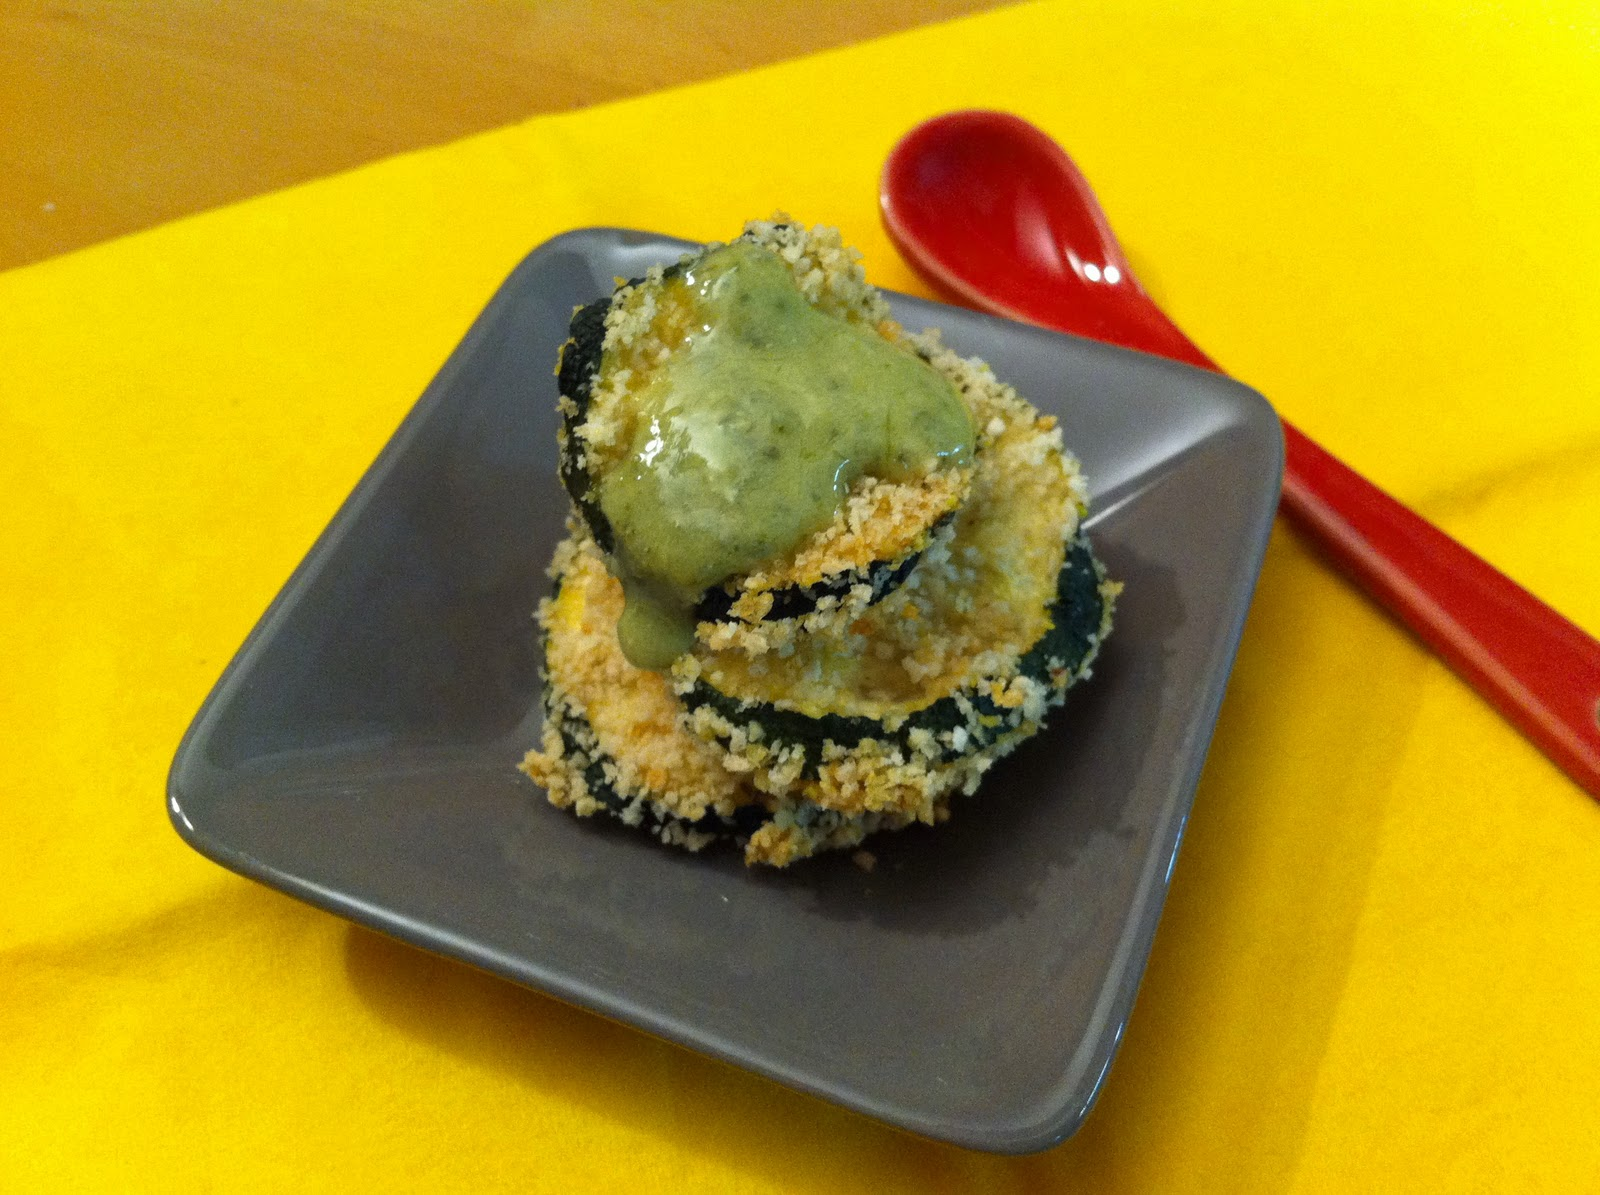 The Wandering Cook: Oven-fried zucchini chips with basil dipping sauce